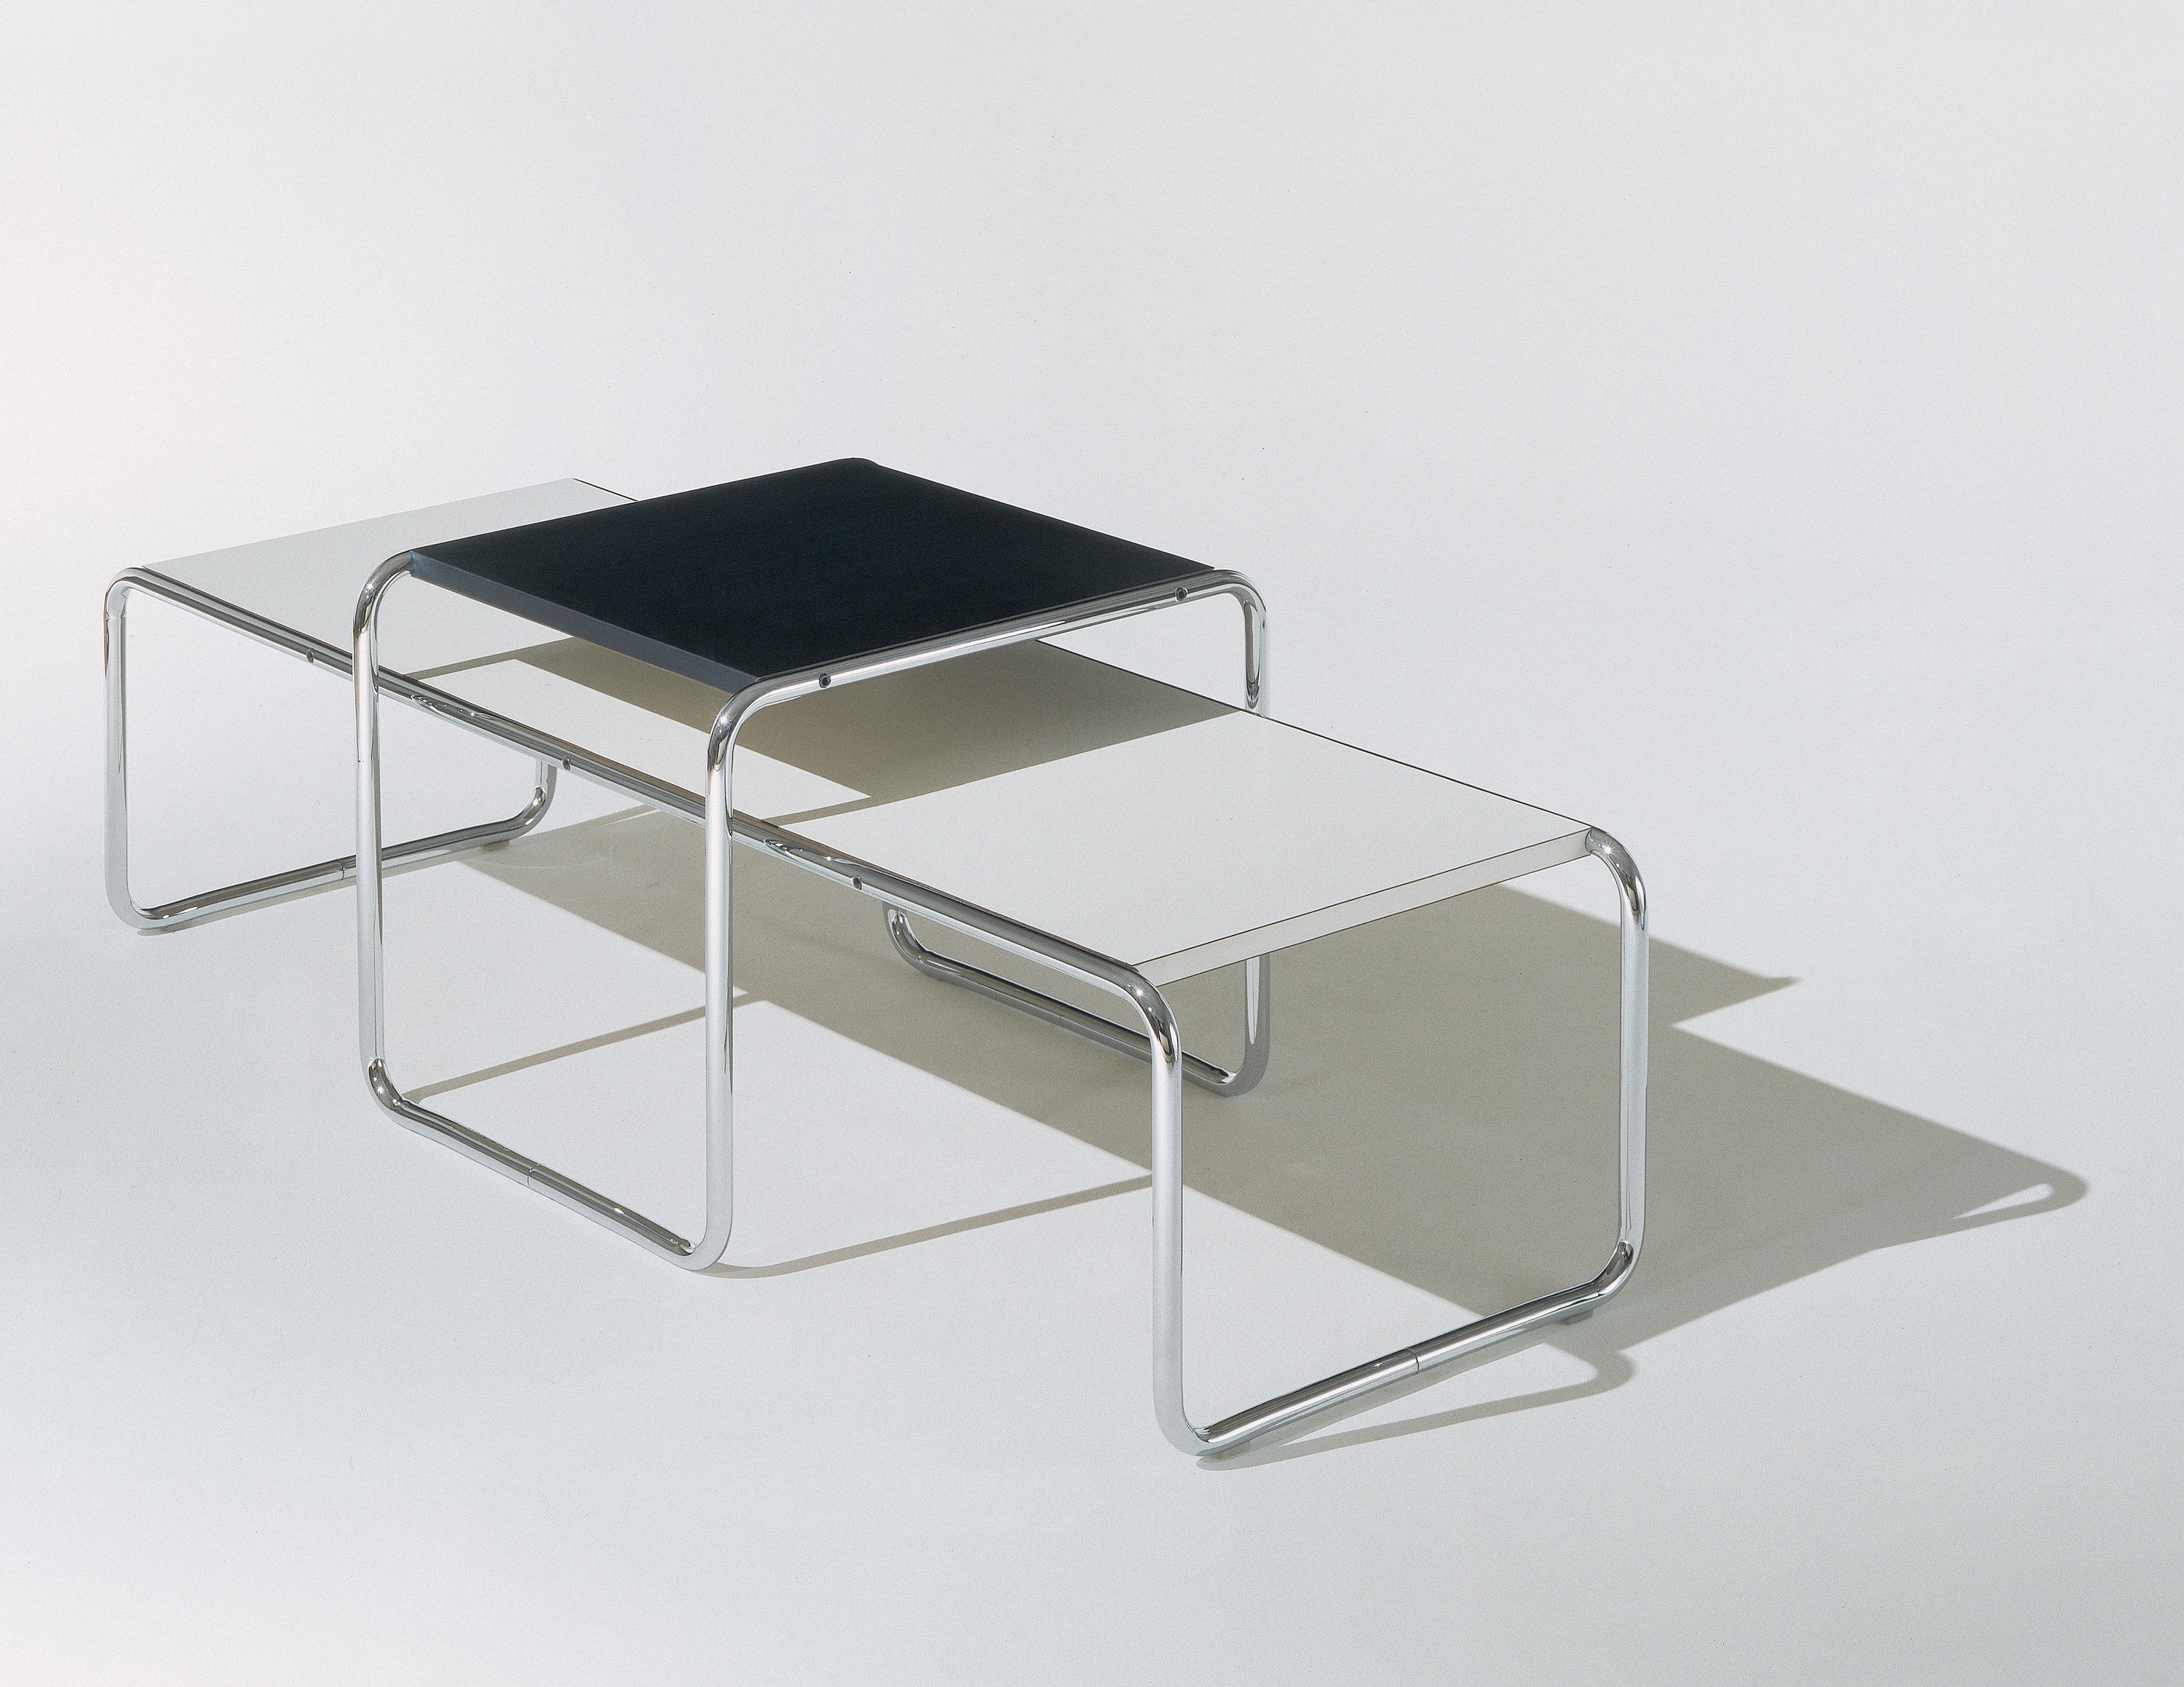 Laccio Table By Knoll International · Laccio Table By Knoll International